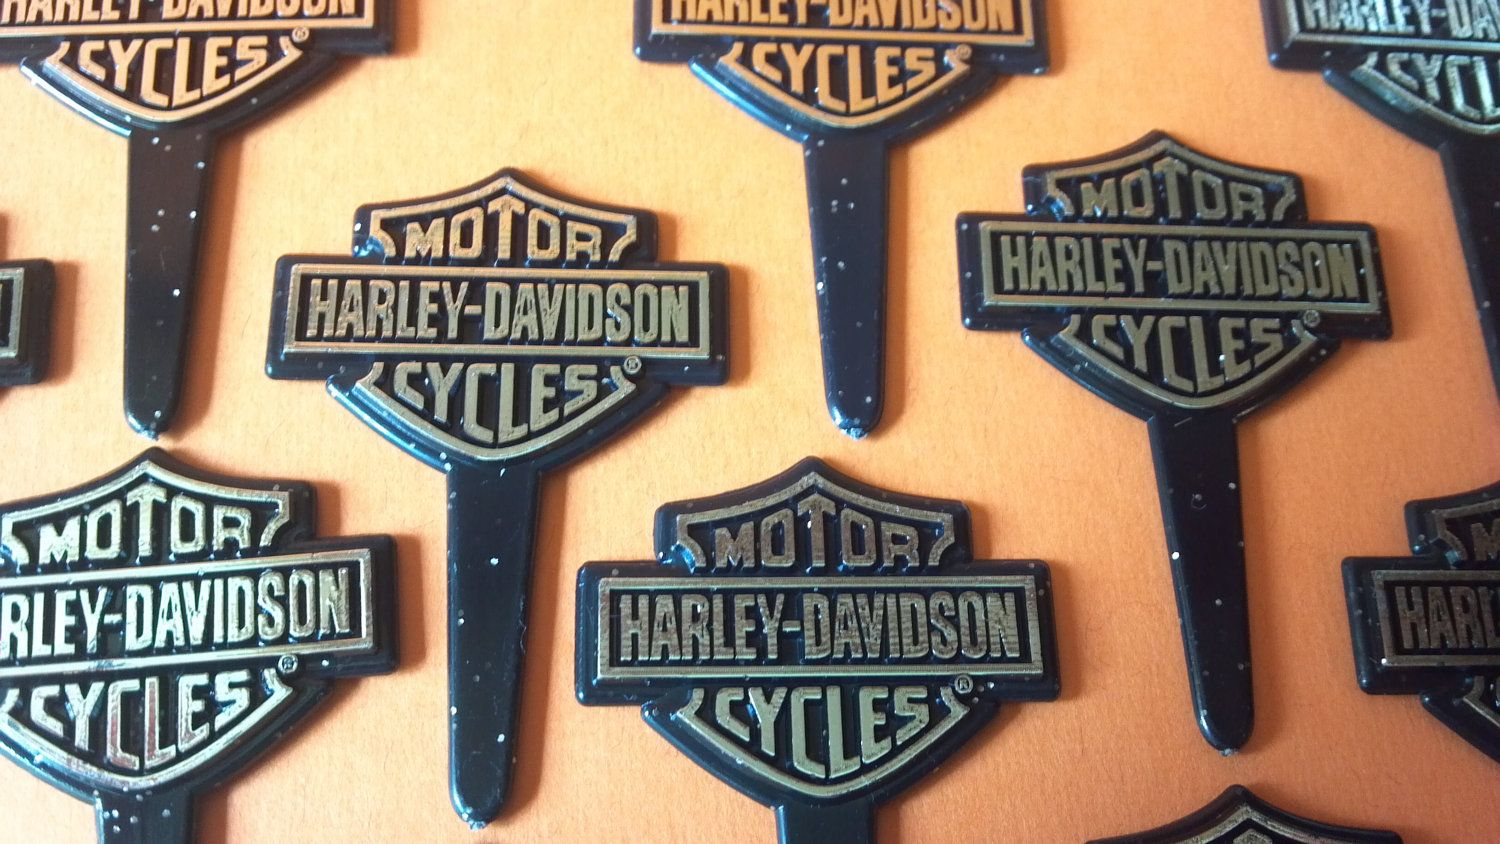 HarleyDavidson cupcake pick or cake topper Harley logo silver on